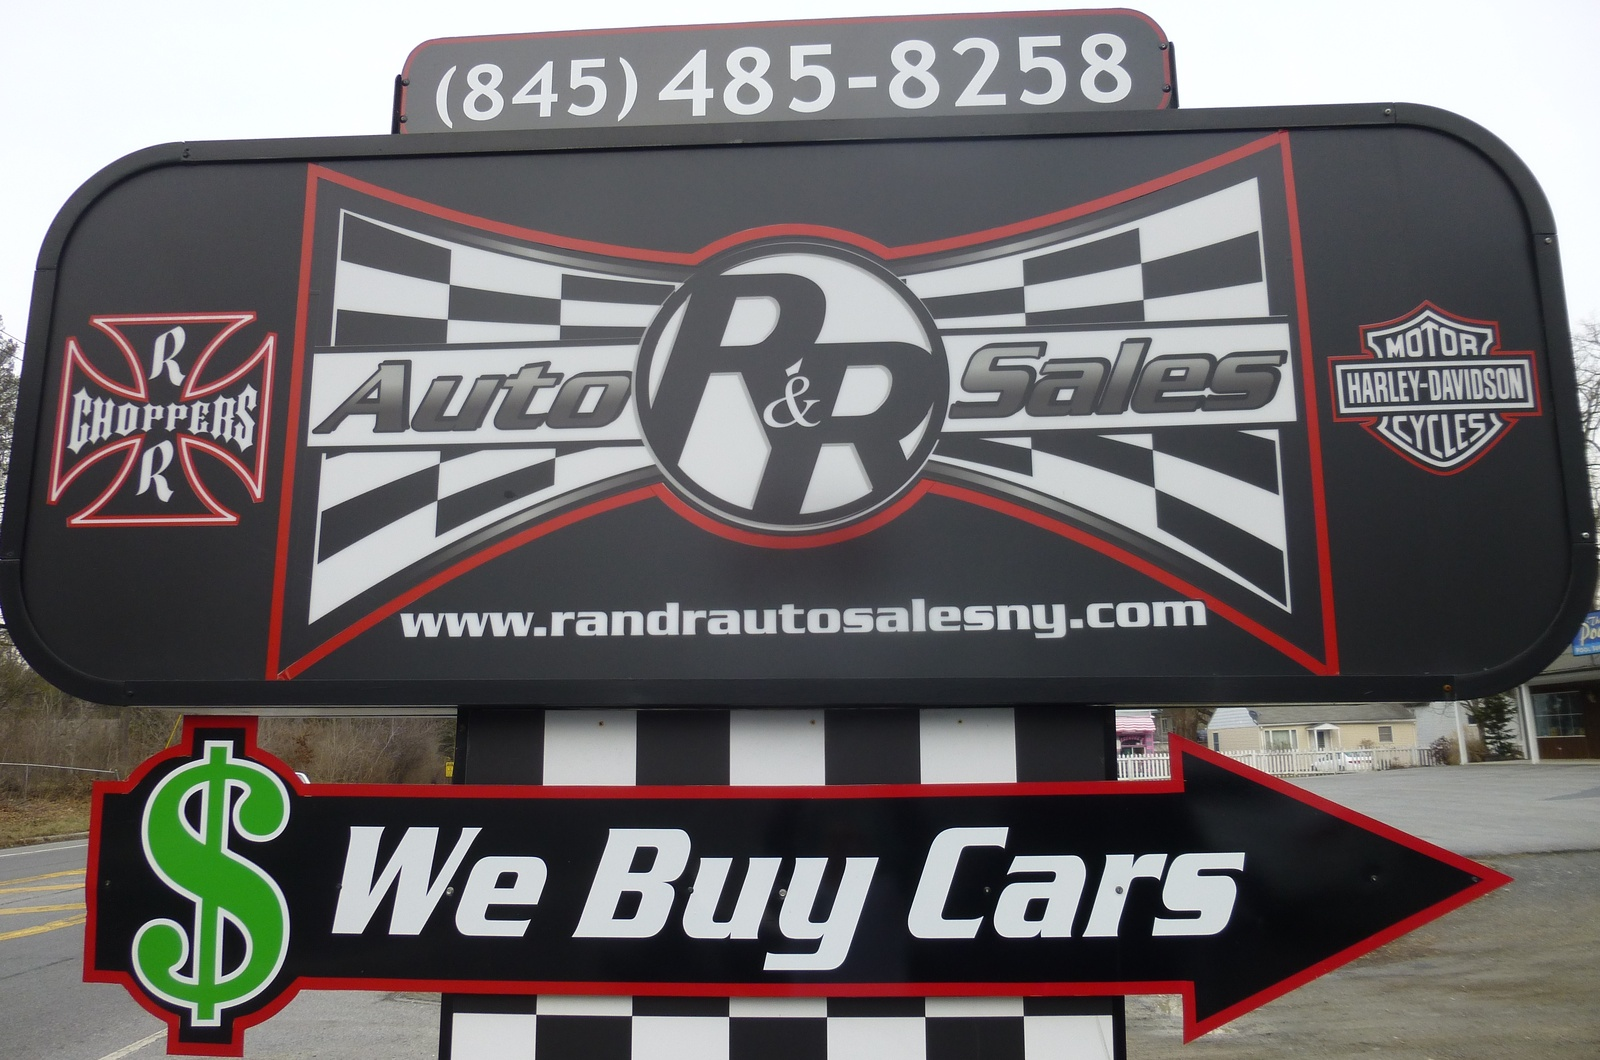 R Amp R Auto Sales Poughkeepsie Ny Read Consumer Reviews Browse Used And New Cars For Sale